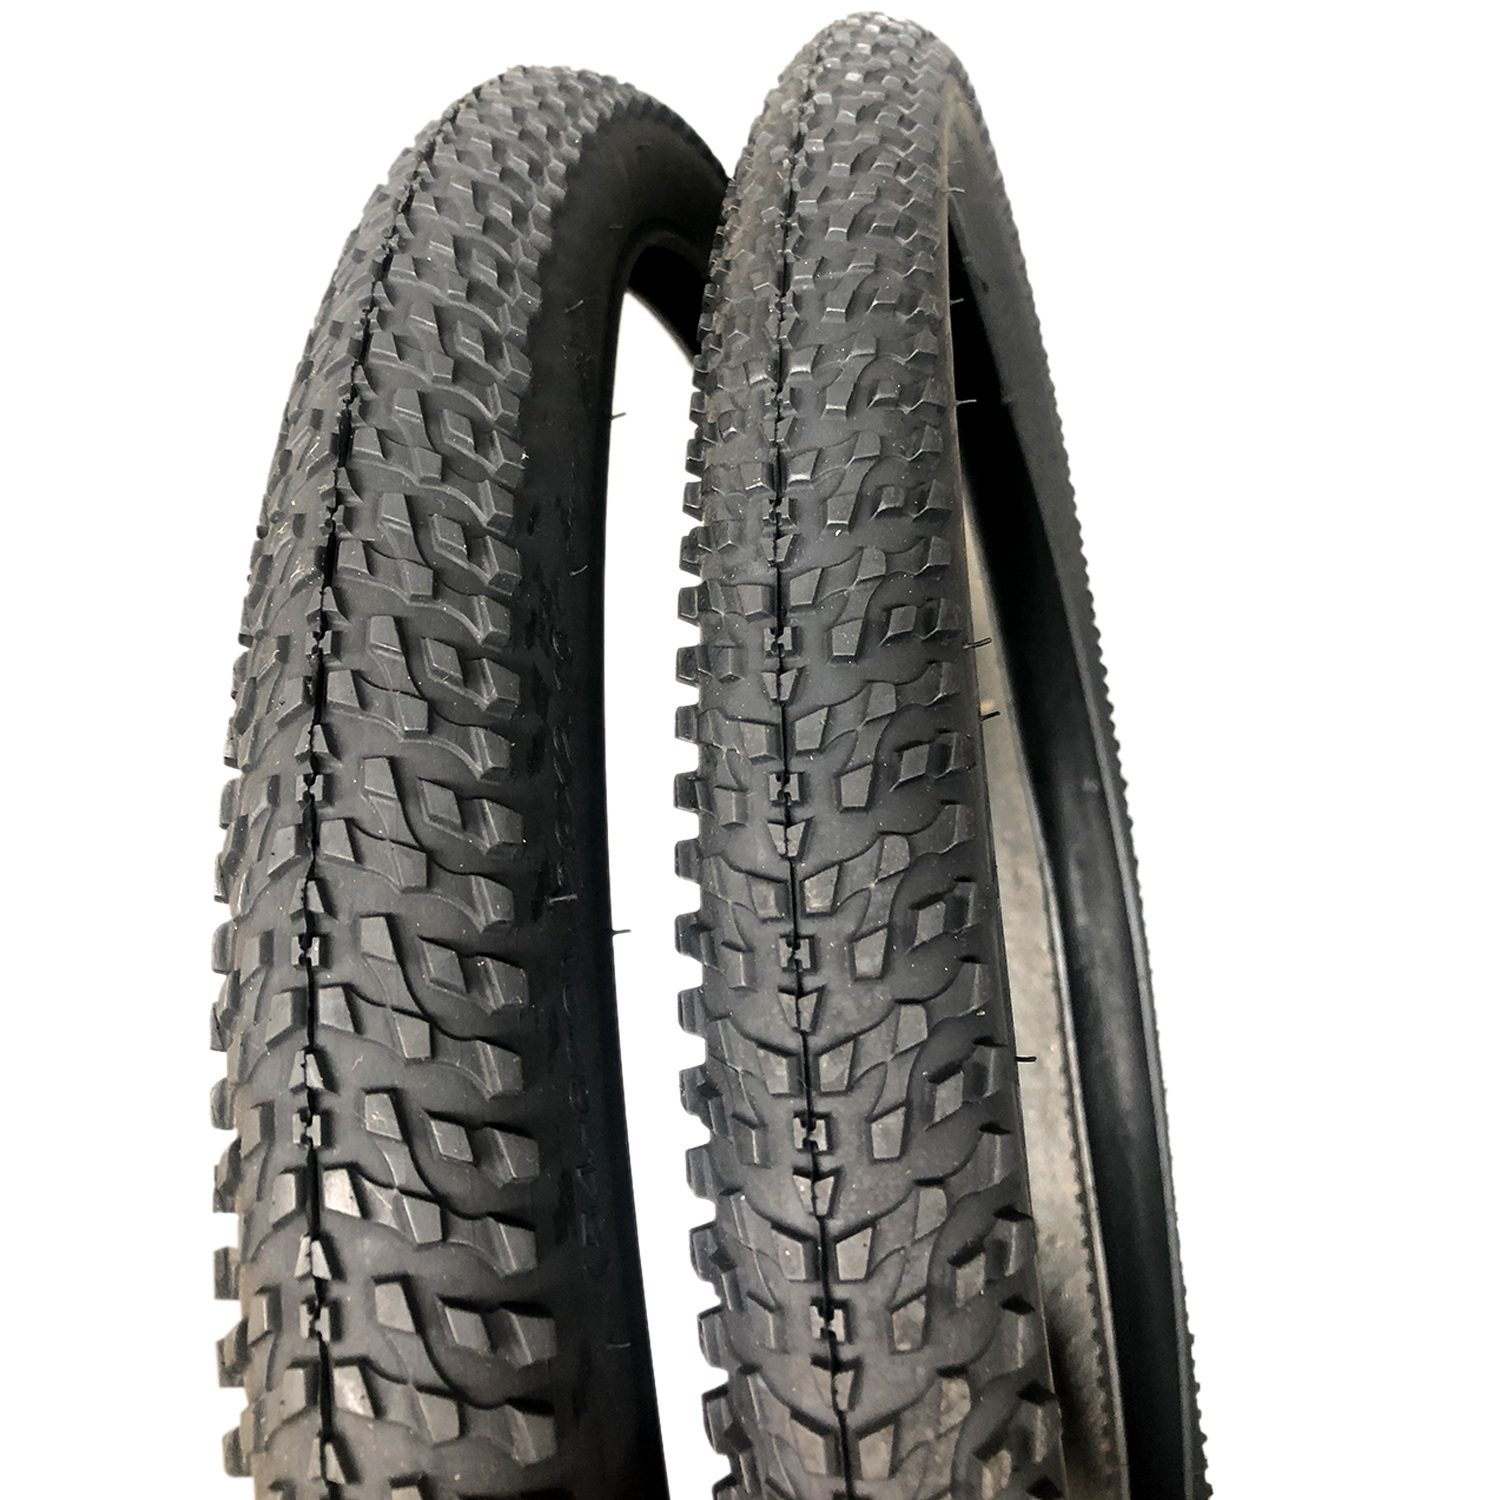 Positz Performance Bicycle Value Bundle Pack 700 x 35c 2x Tubes and 2x Tyres